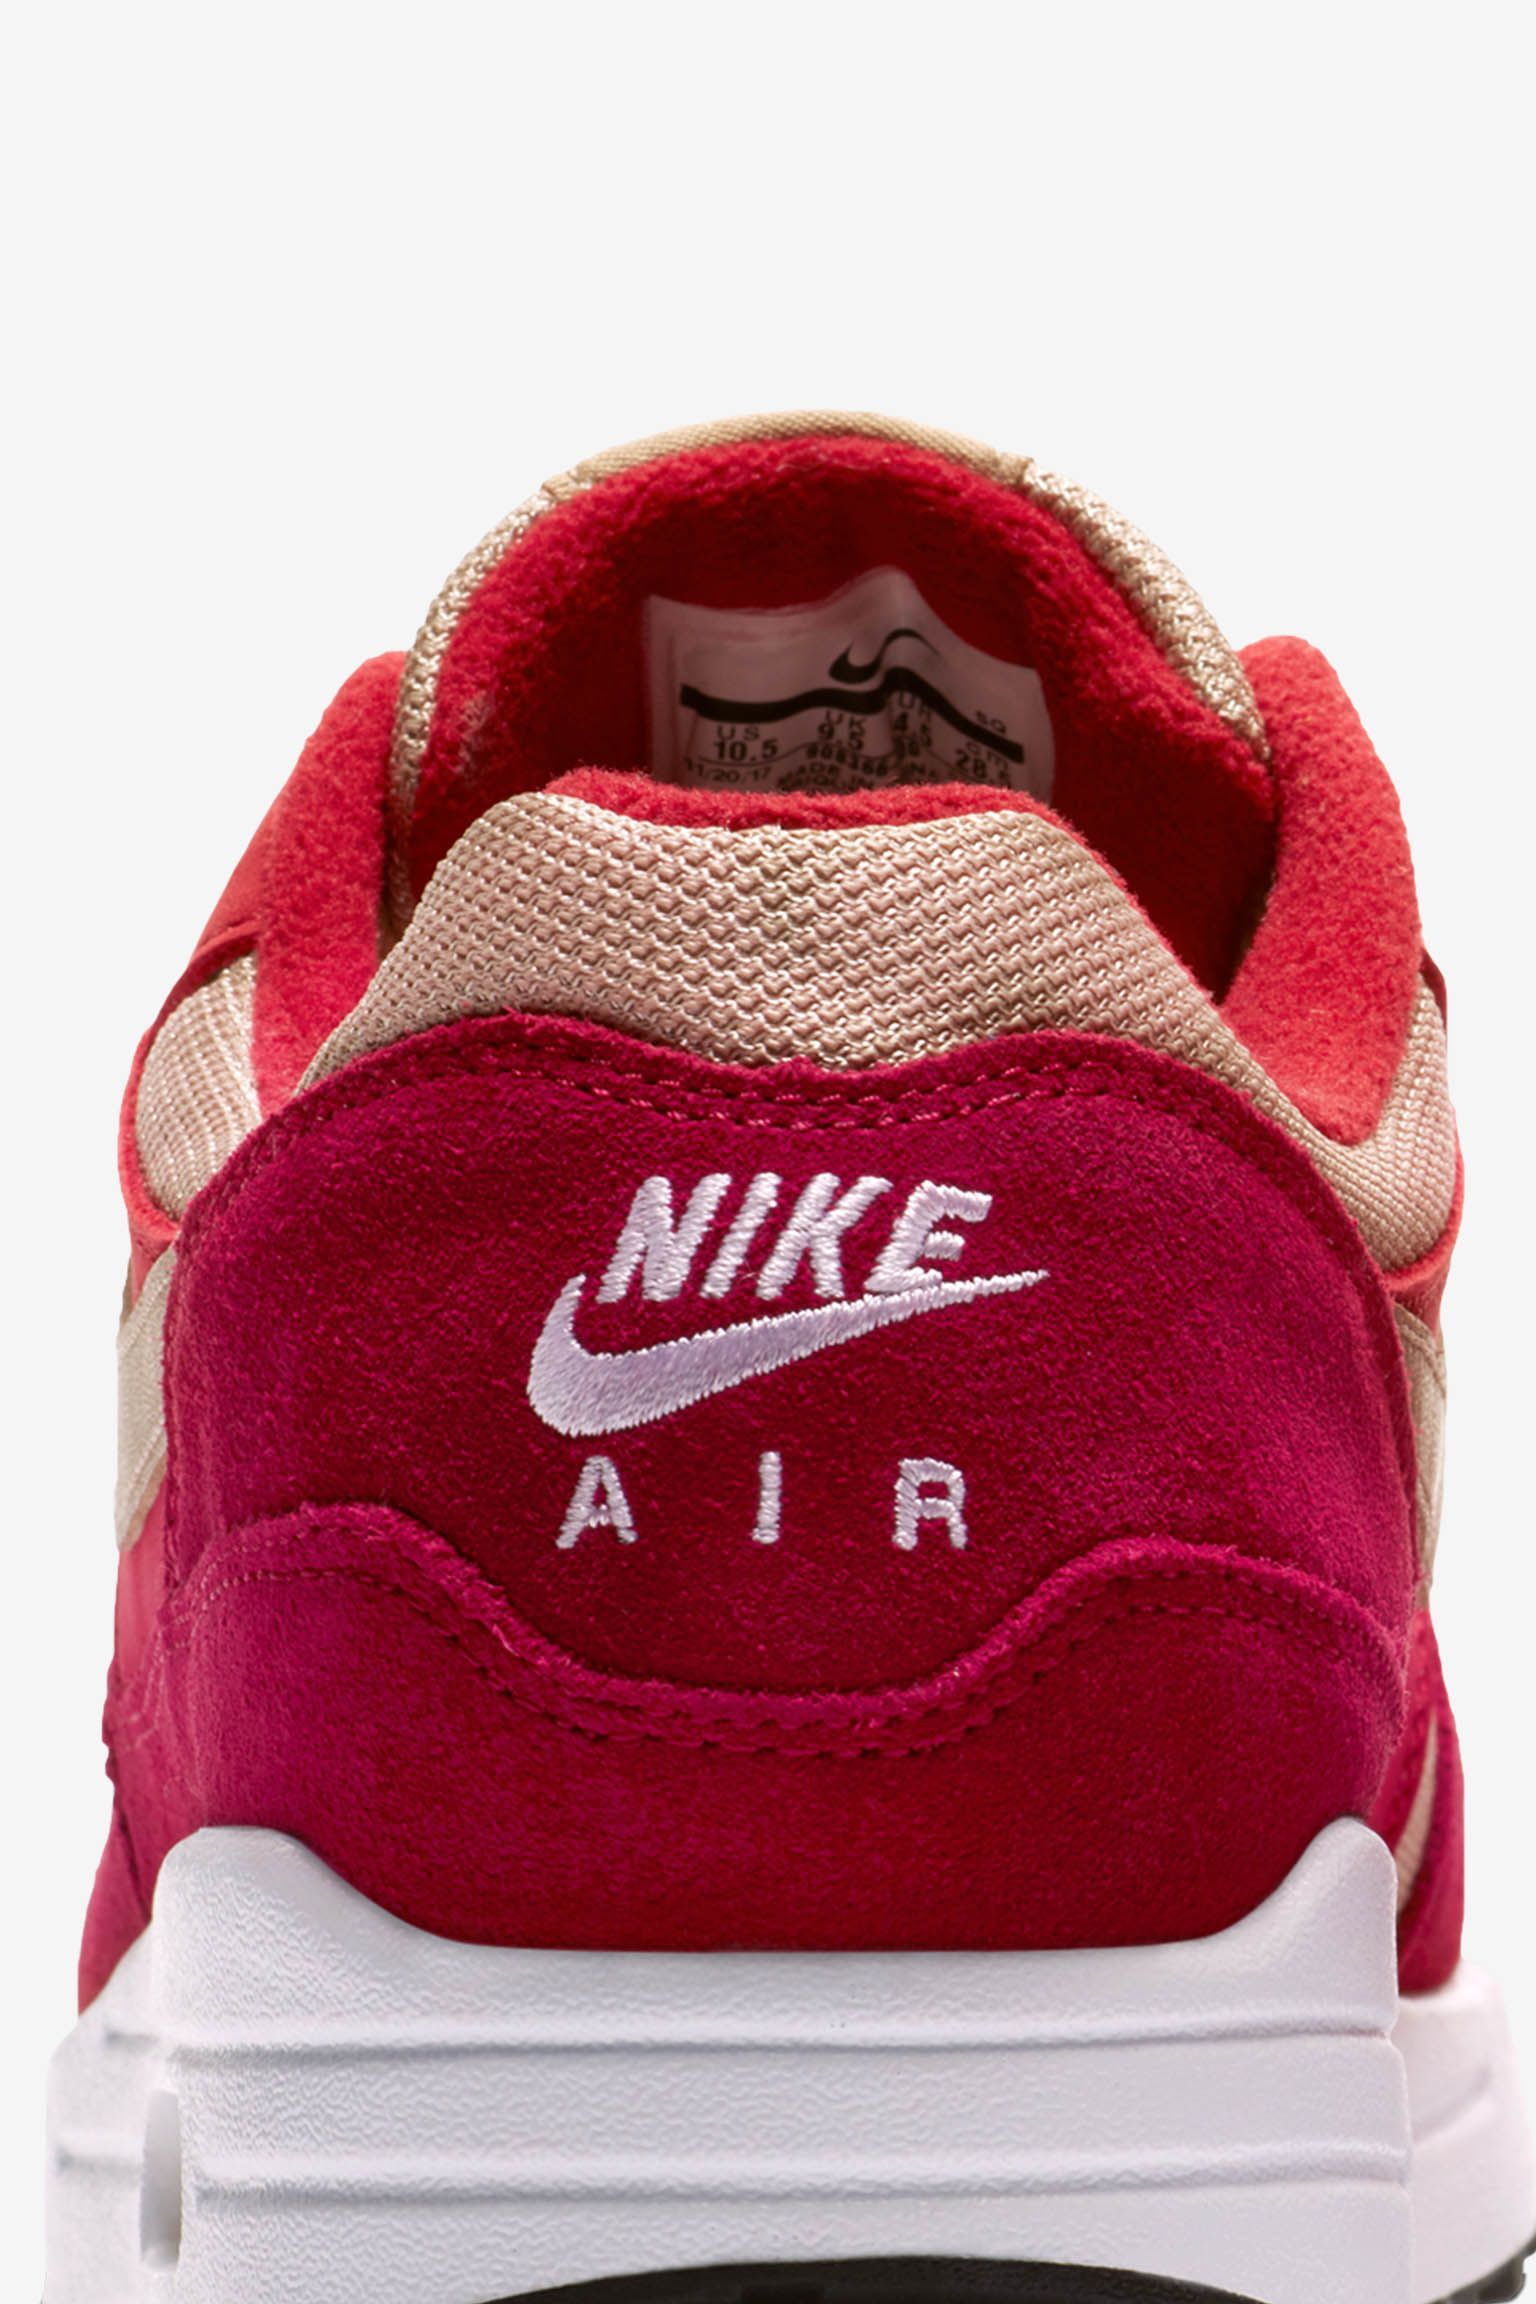 Nike Air Max 1 Premium 'Red Curry' Release Date